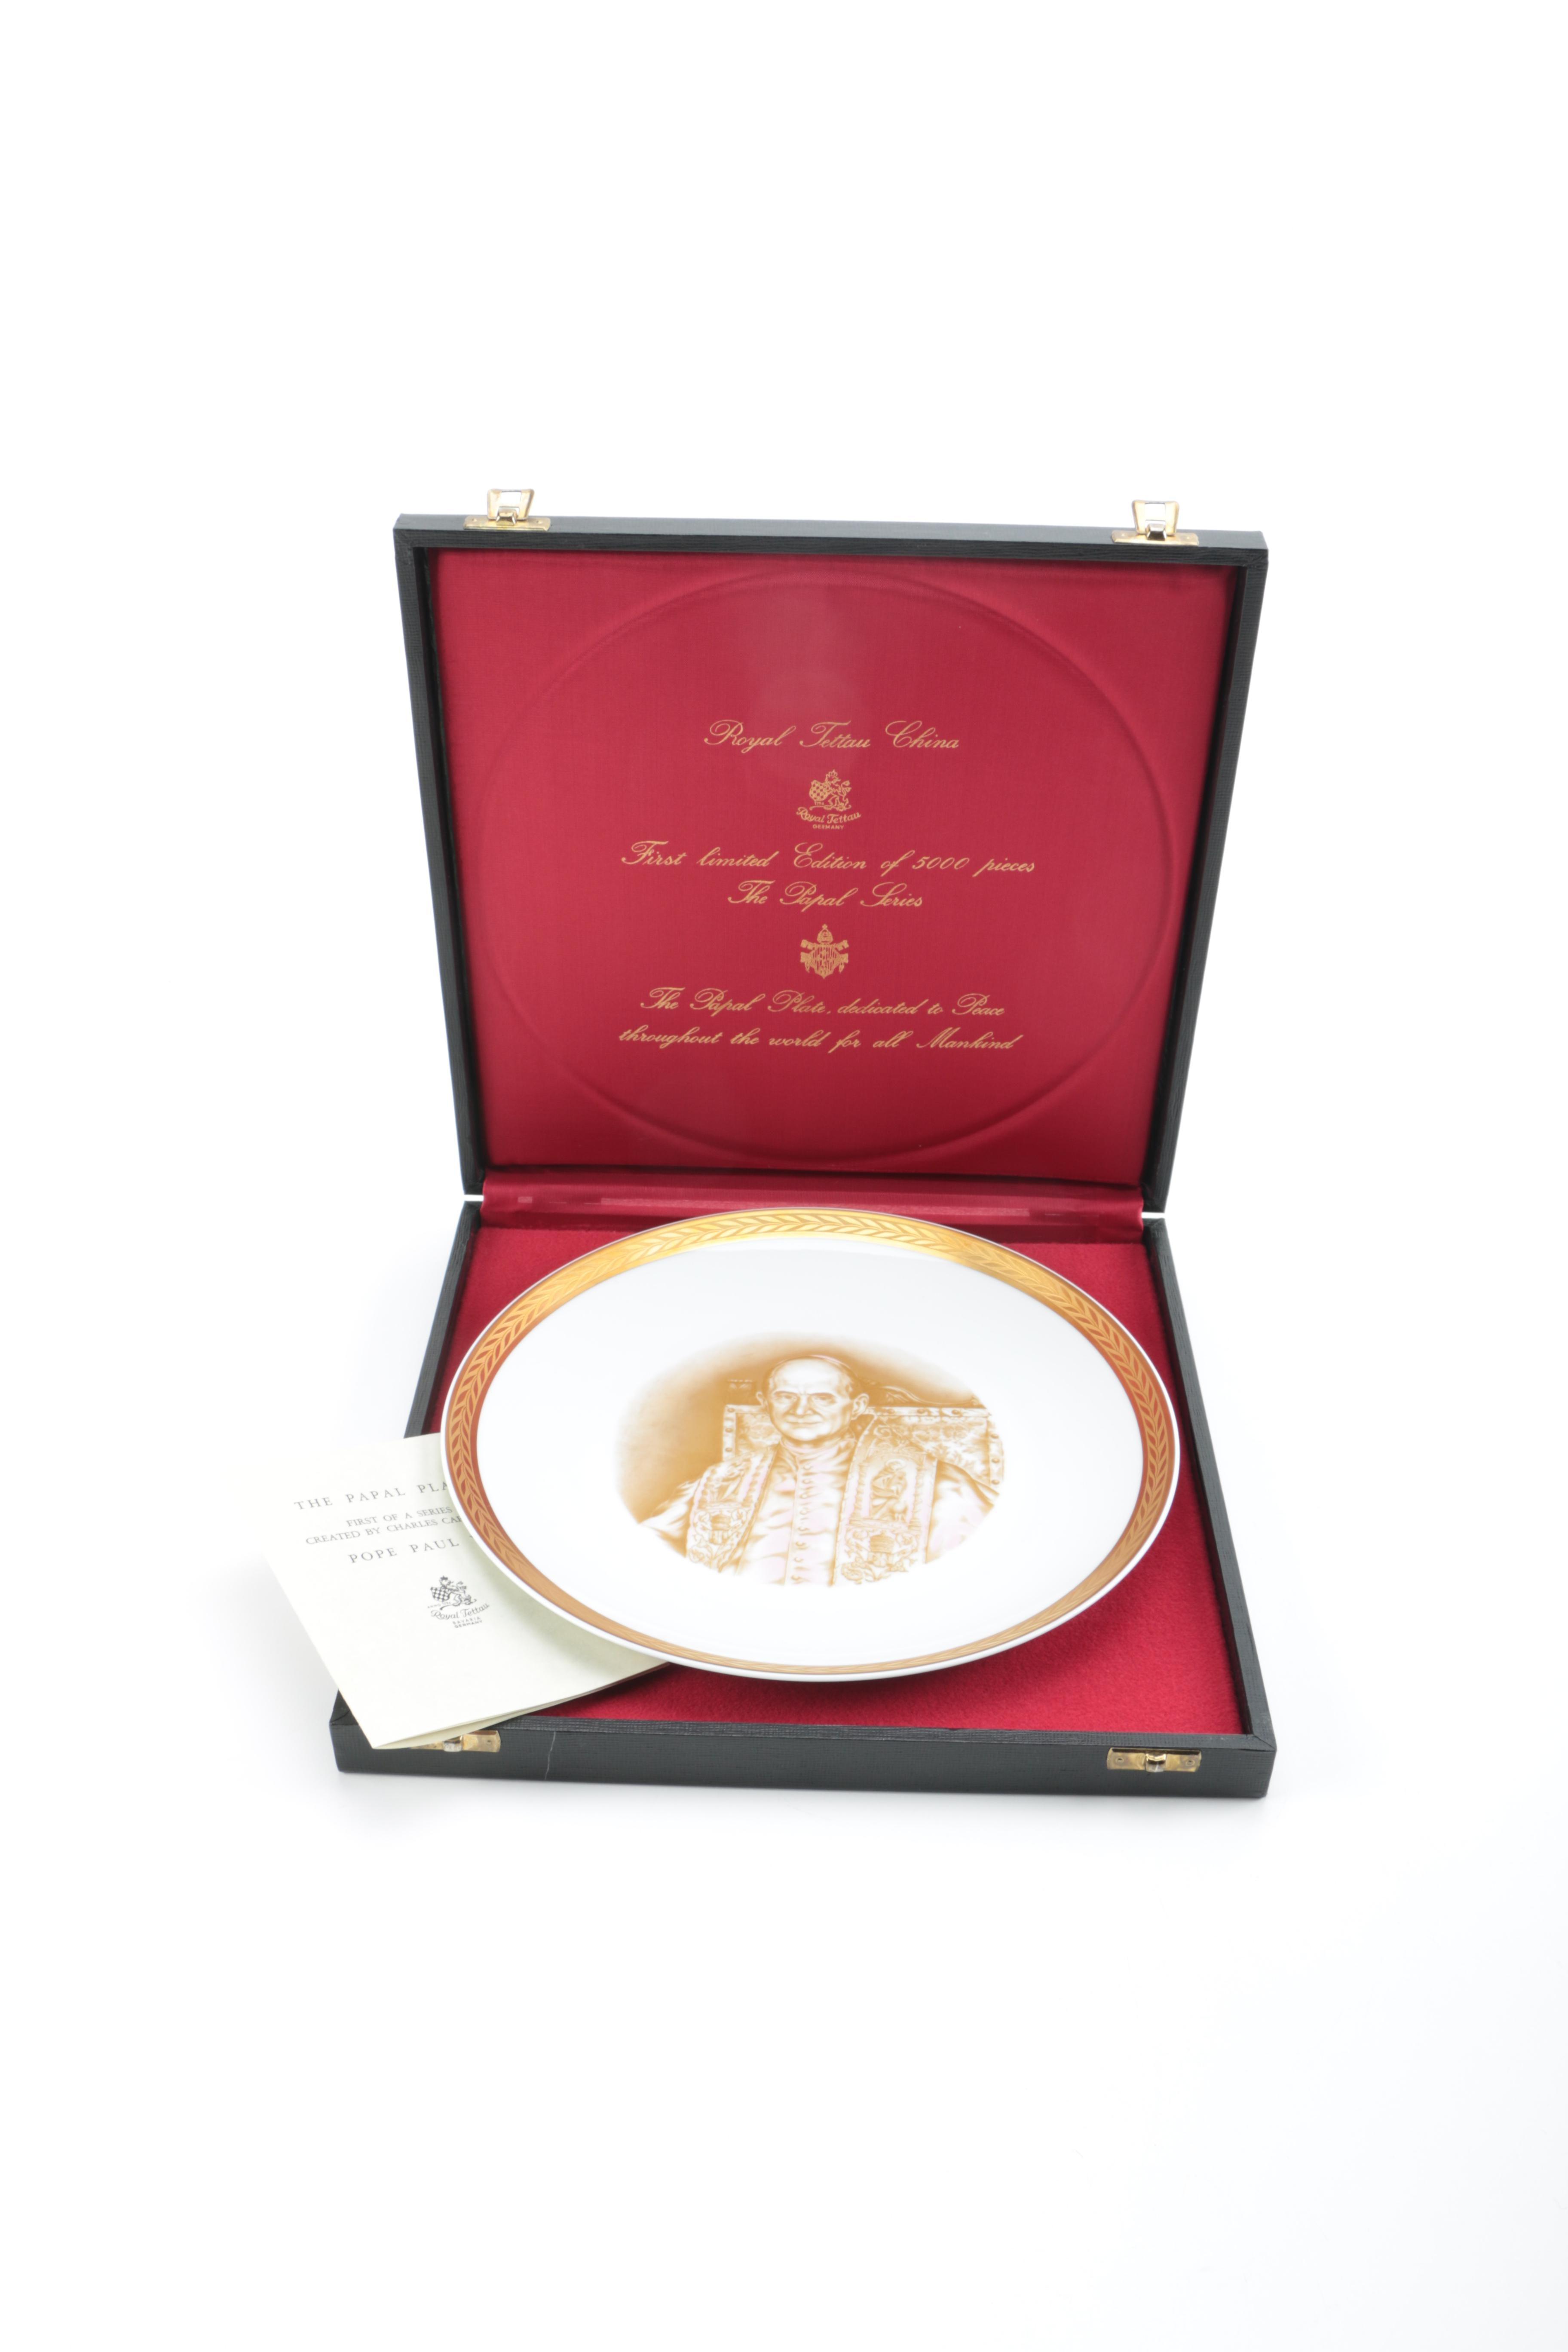 1971 Limited Edition Plate Featuring Pope Paul VI